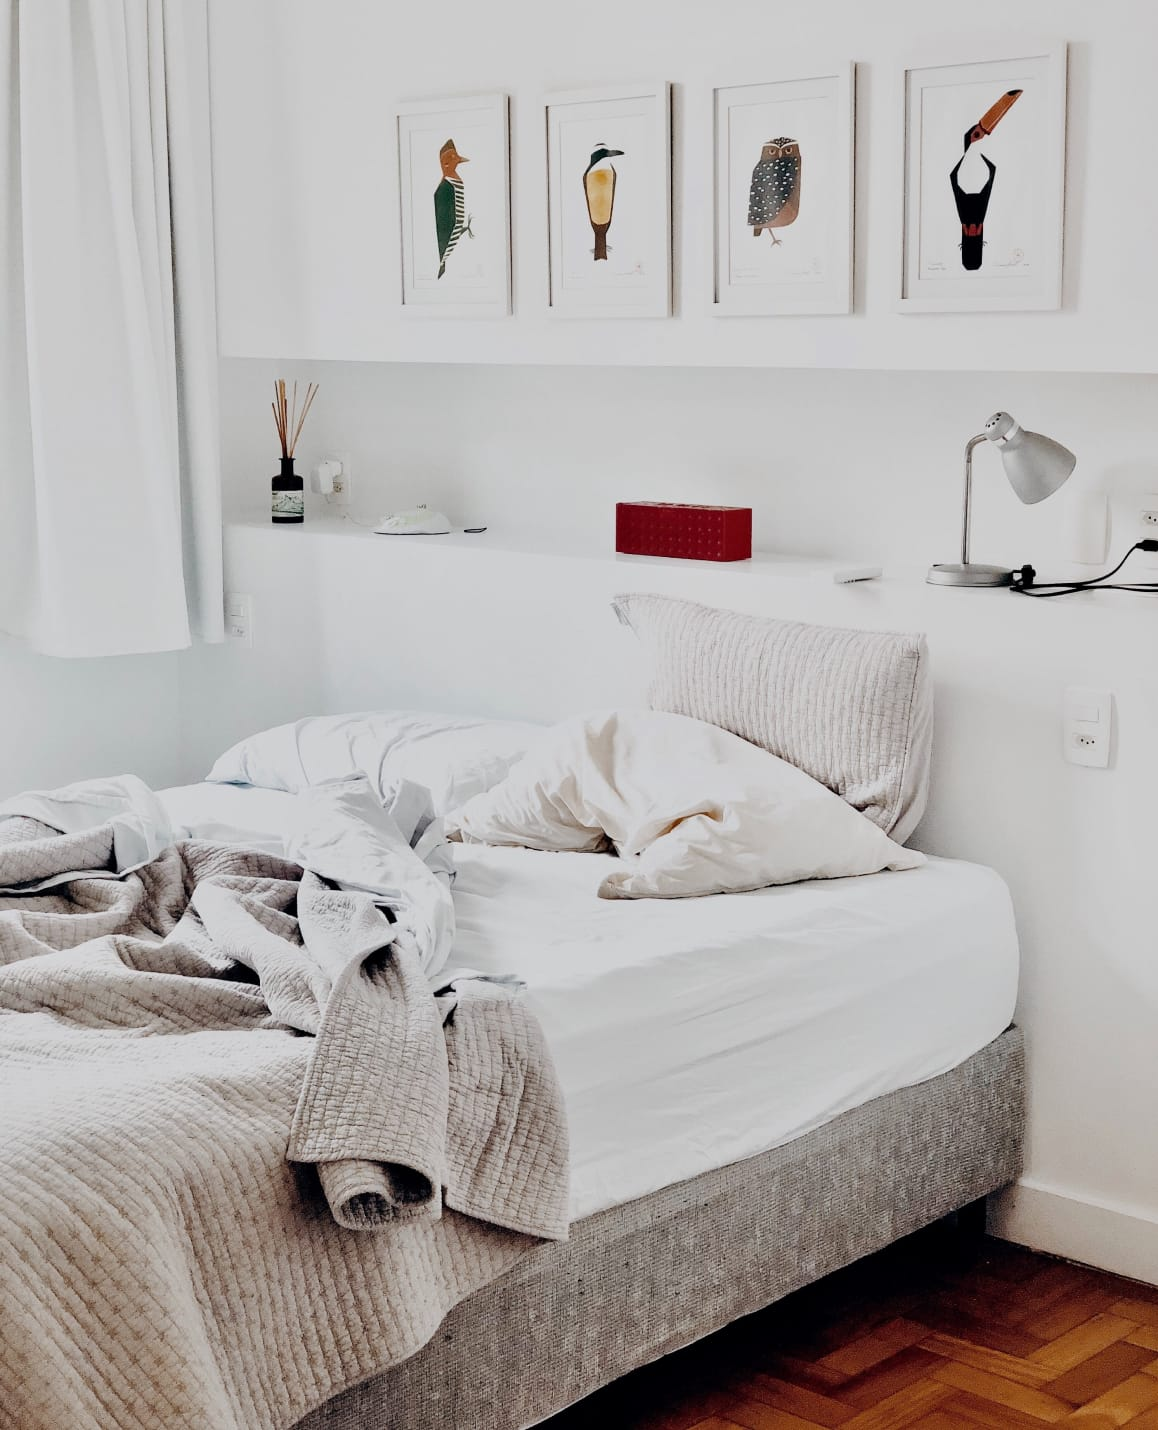 Bed with built in shelving behind